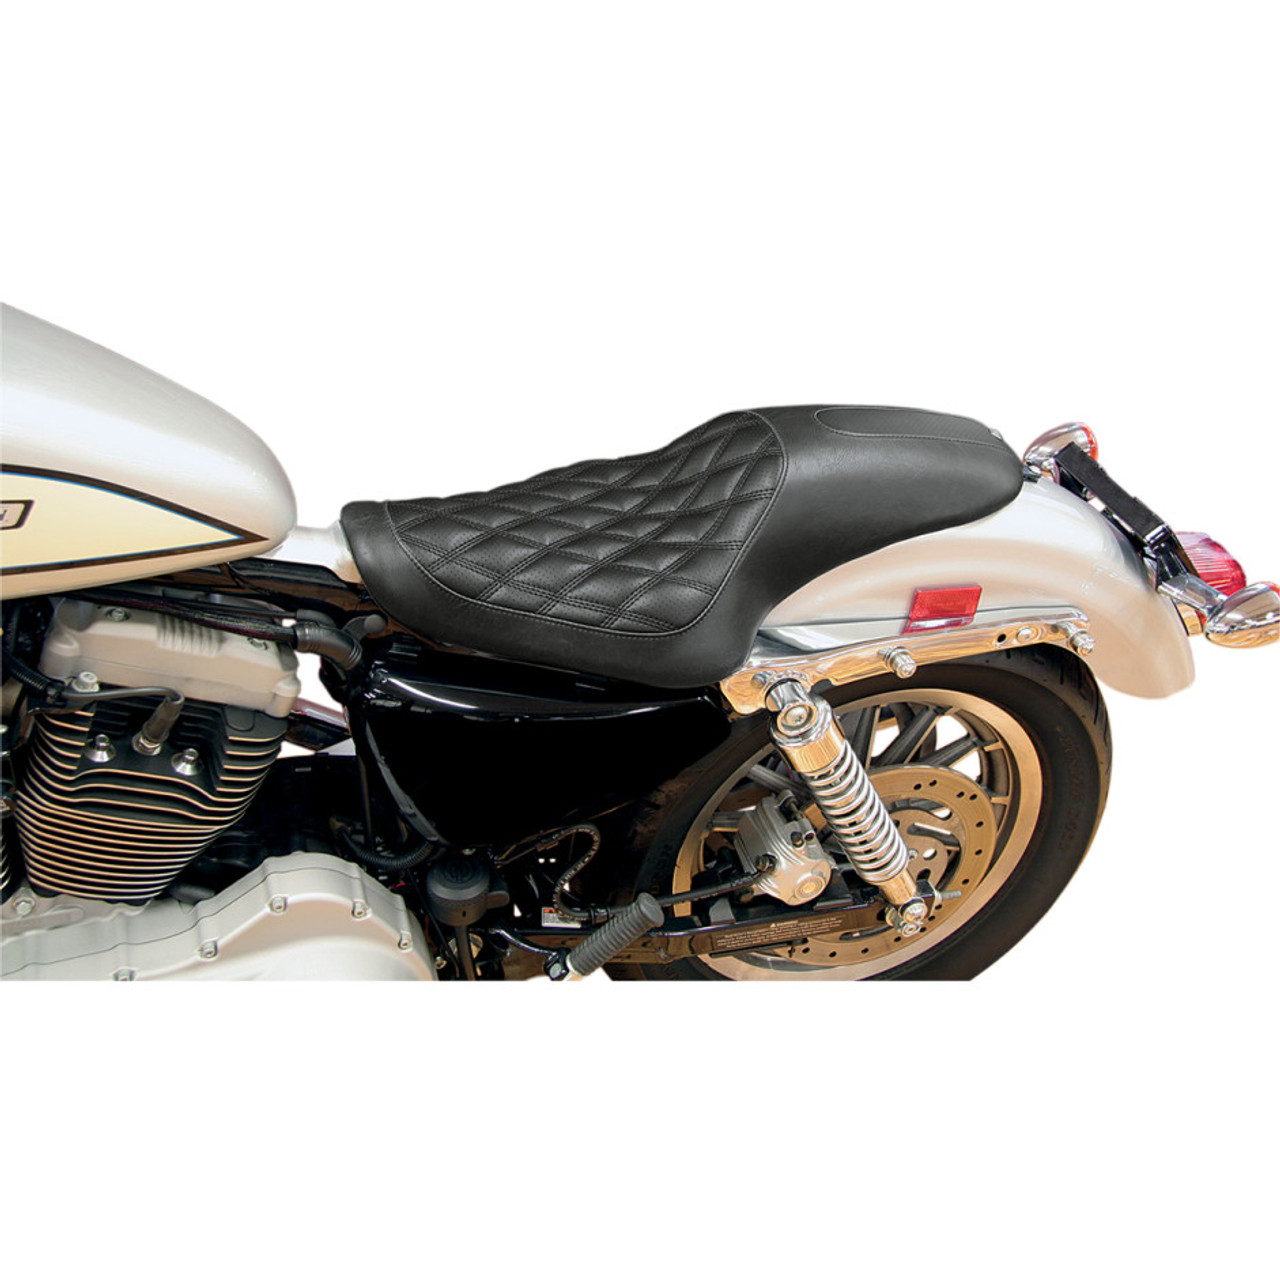 roland sands boss 2 up seat for 2004 2018 harley sportster  [ 941 x 941 Pixel ]